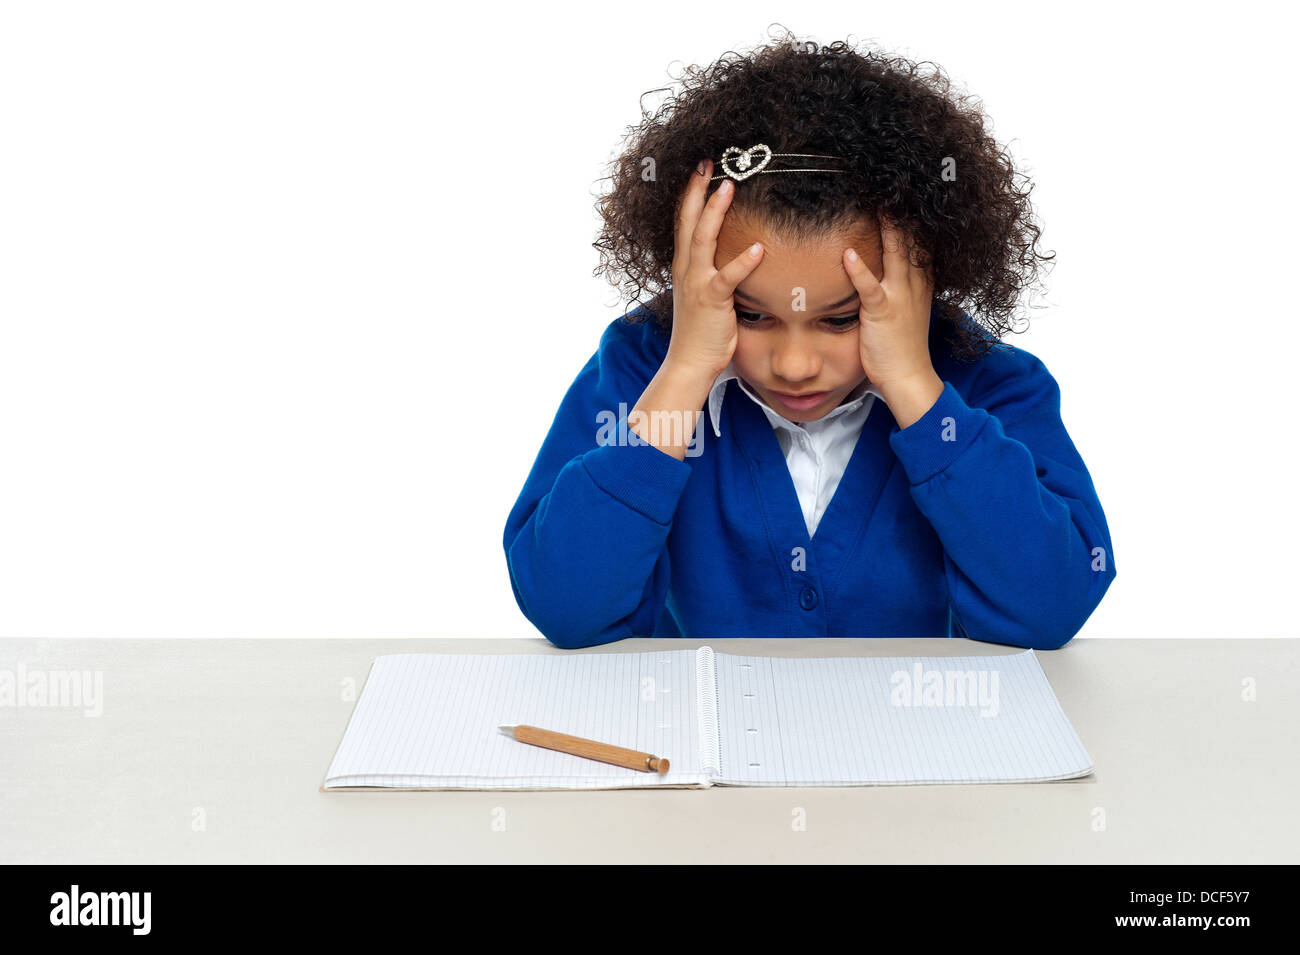 Stressed out primary girl child thinking hard to recollect the answer - Stock Image